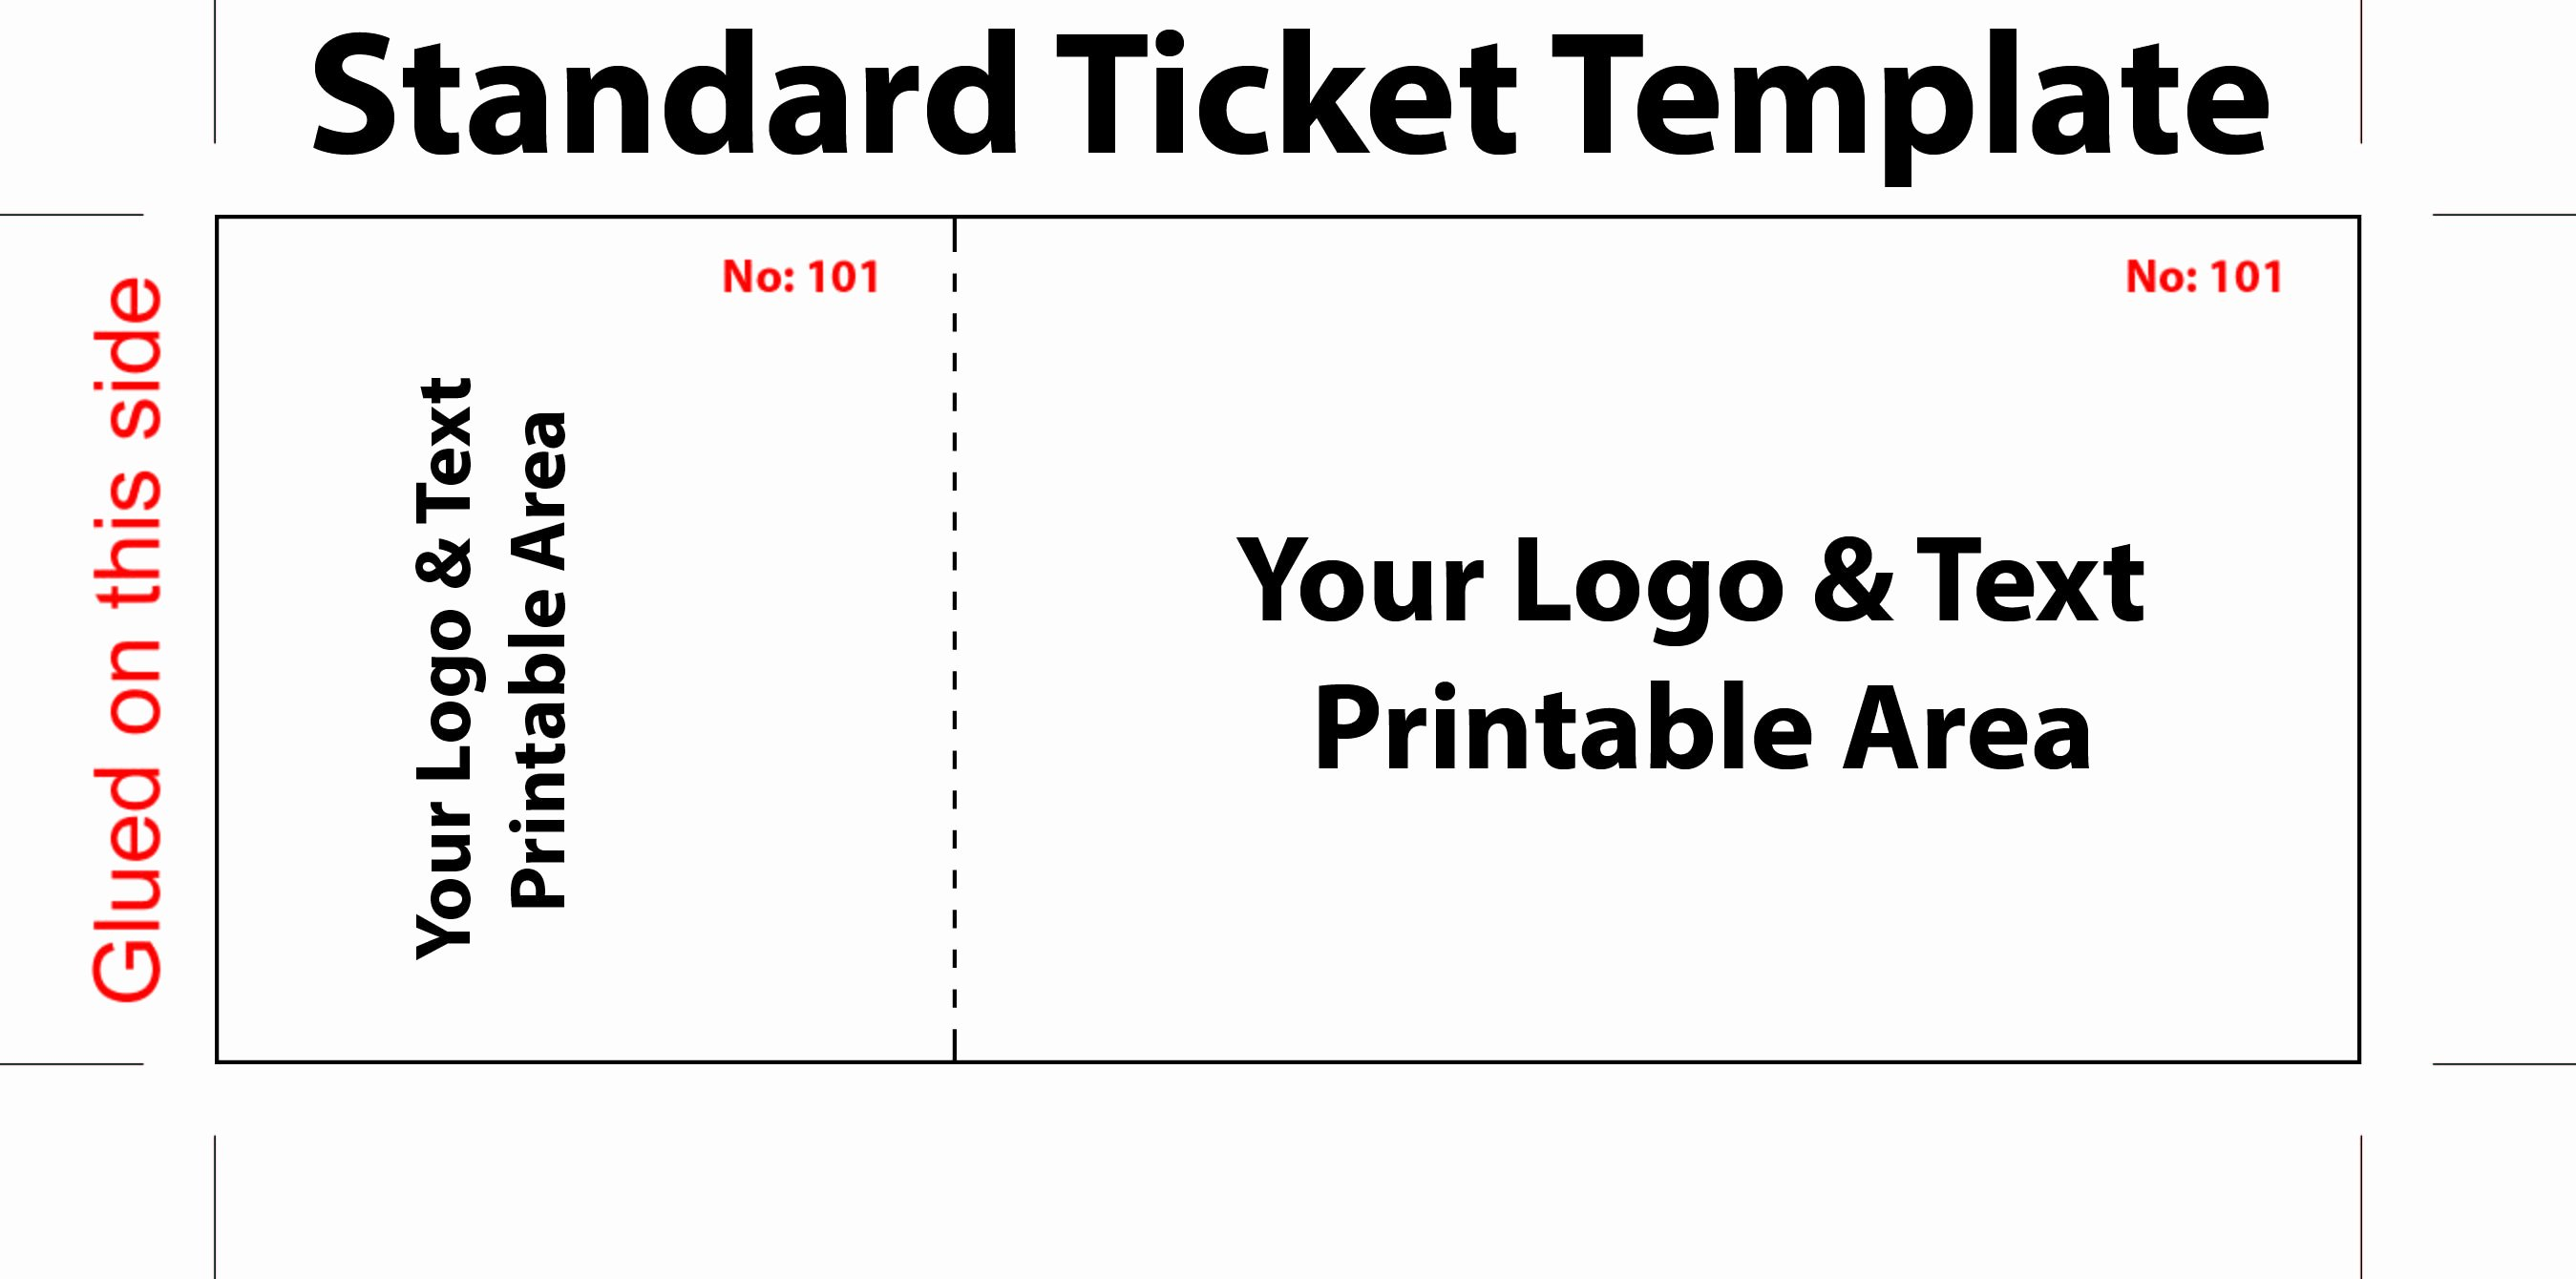 Free Printable Tickets Template Fresh Free Editable Standard Ticket Template Example for Concert